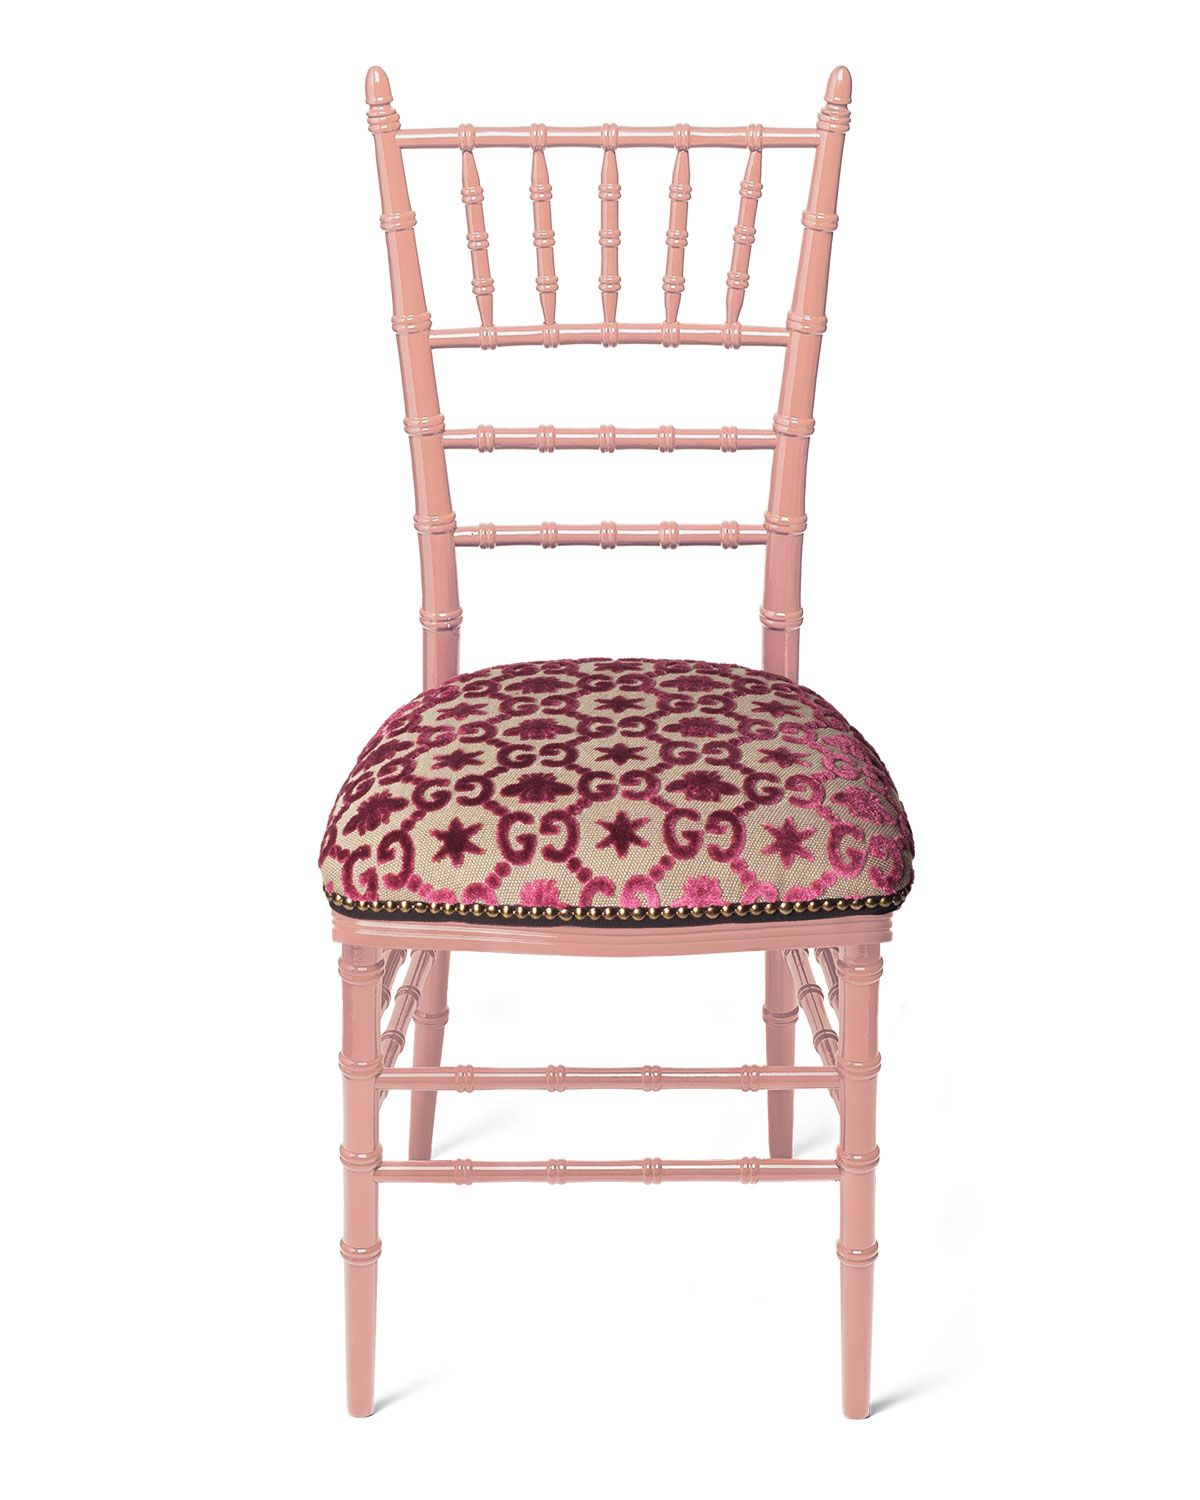 gucci dining chairs on gucci chiavari beechwood gg jacquard chair pink made to order luxury chairs chiavari chairs chair pinterest